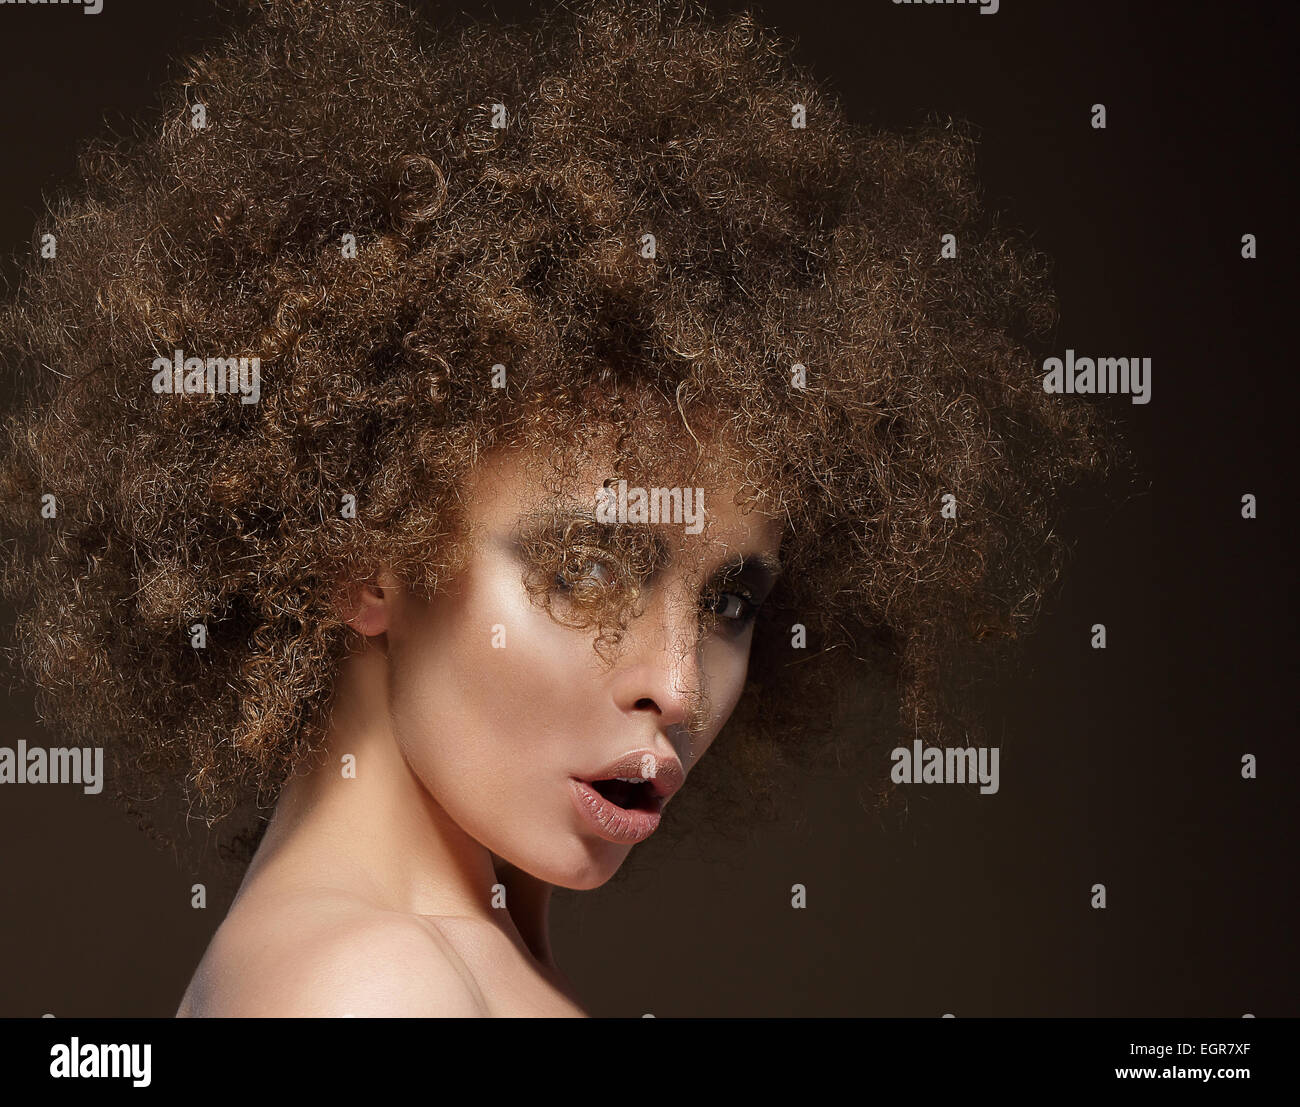 Trendy Charismatic Woman with Frizzy Hairdo - Stock Image